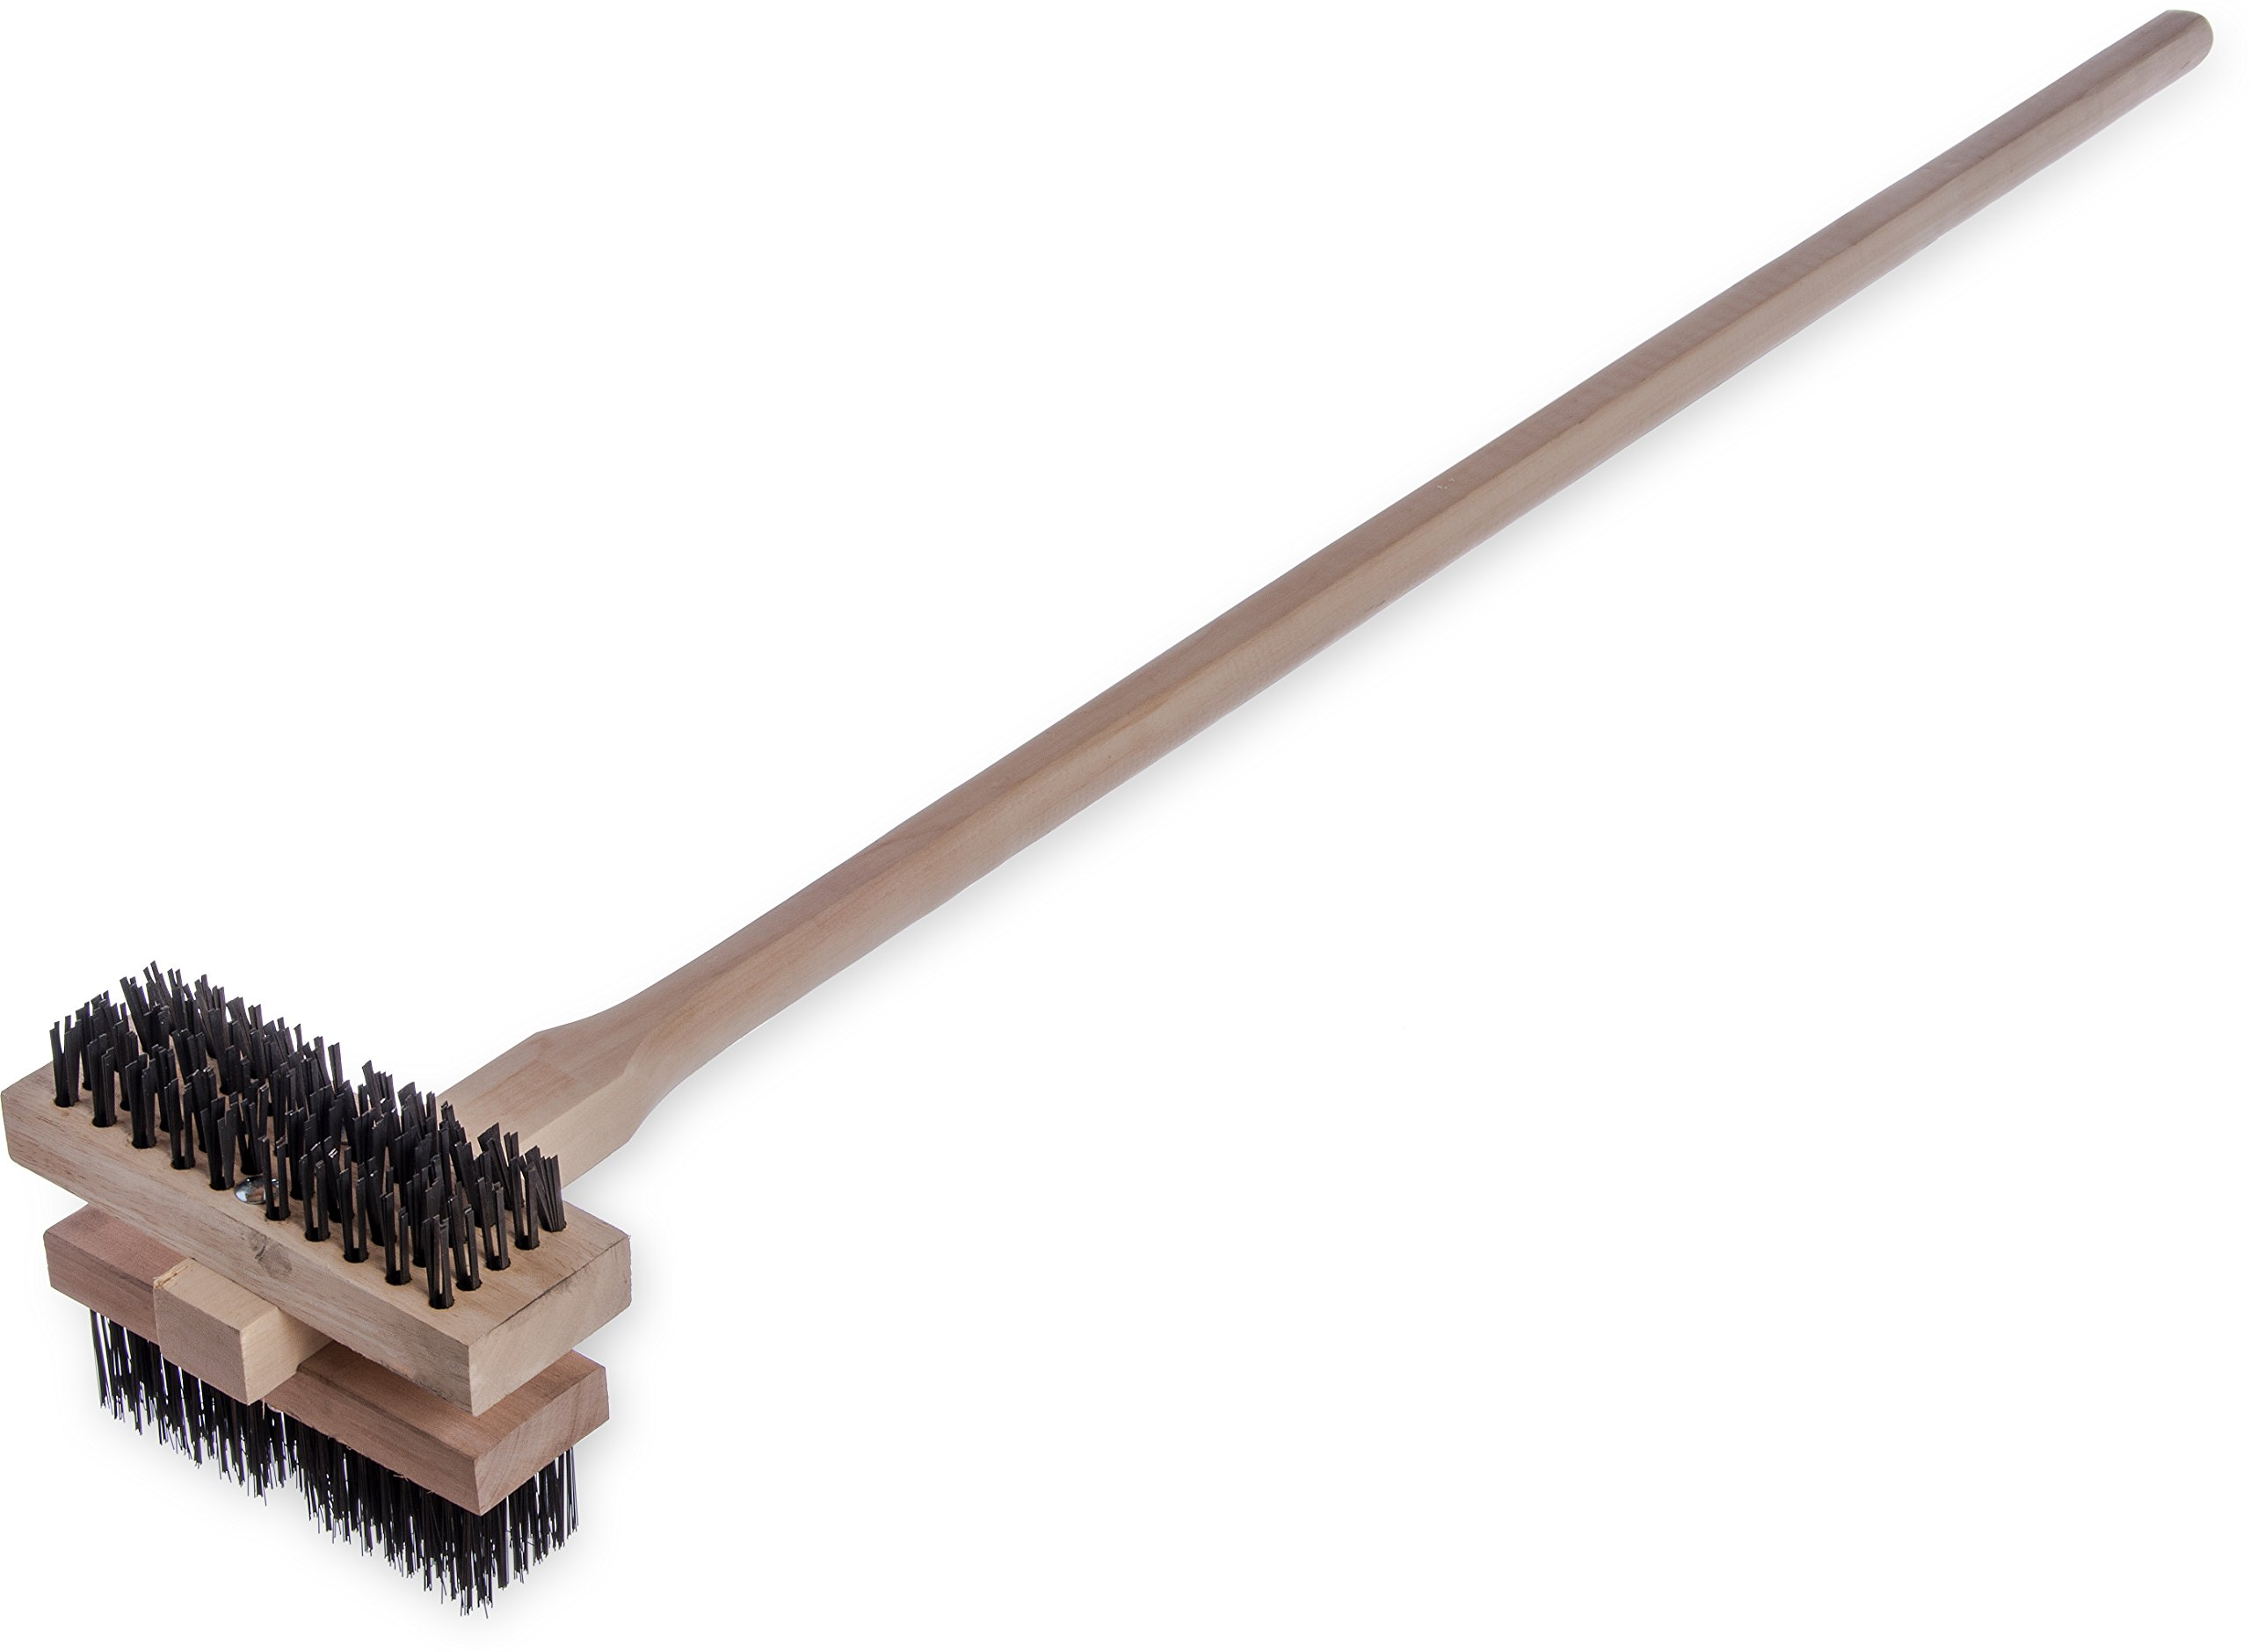 Carlisle 4029400 Carbon Steel Double Broiler King Brush with Hardwood Handle, 7-3/4'' Brush Length, 1-5/8'' Bristle Trim, 48'' Overall Length (Case of 2) by Carlisle